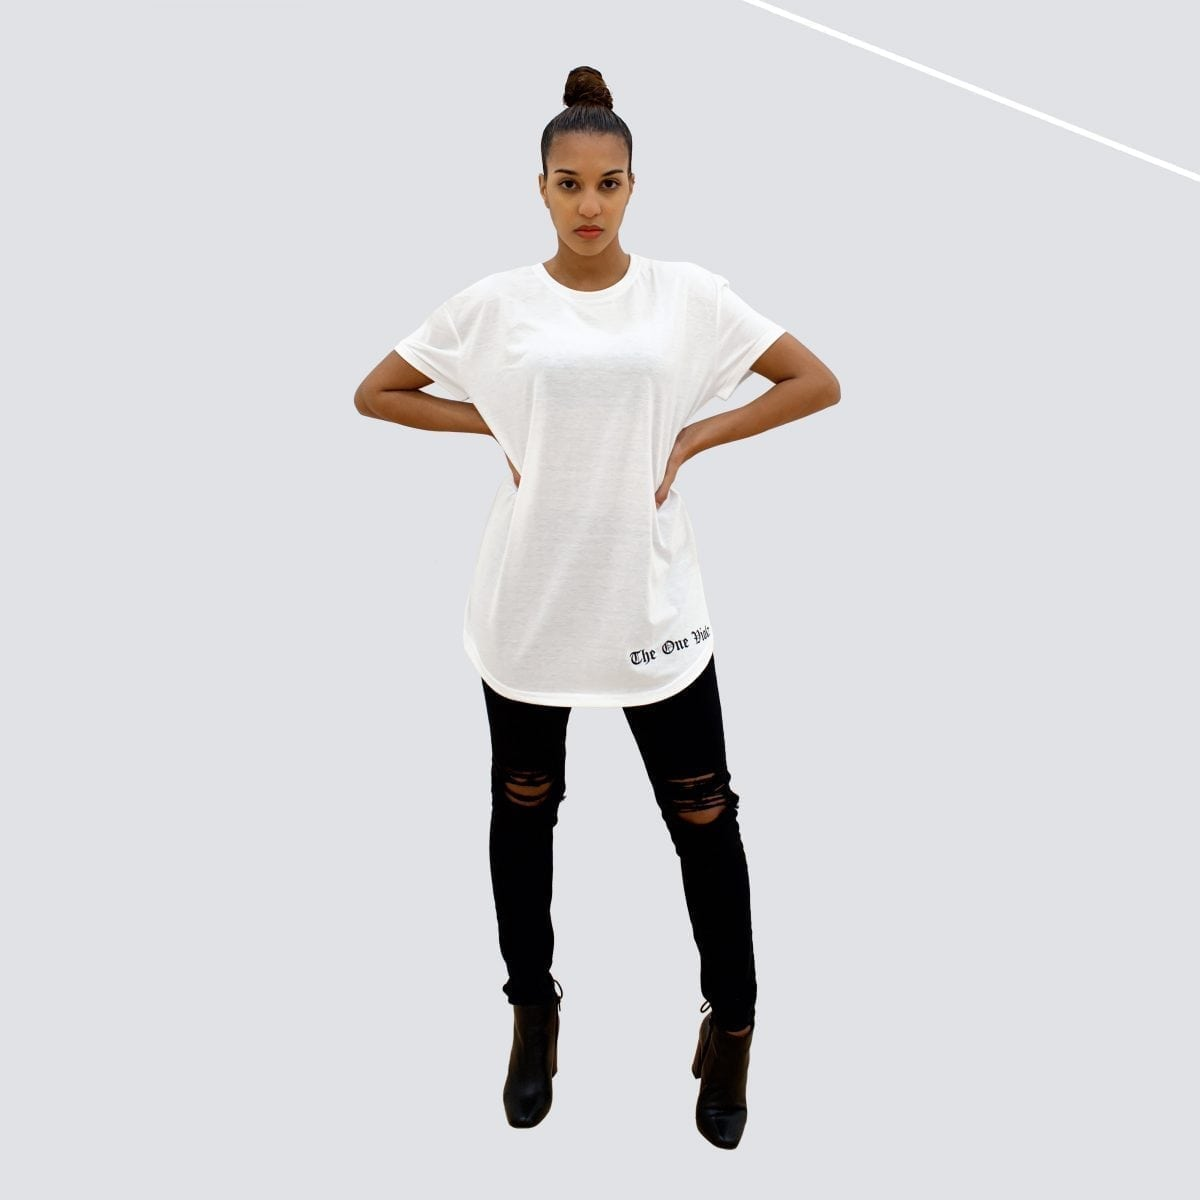 woman wearing unisex oversized white streetwear tshirt